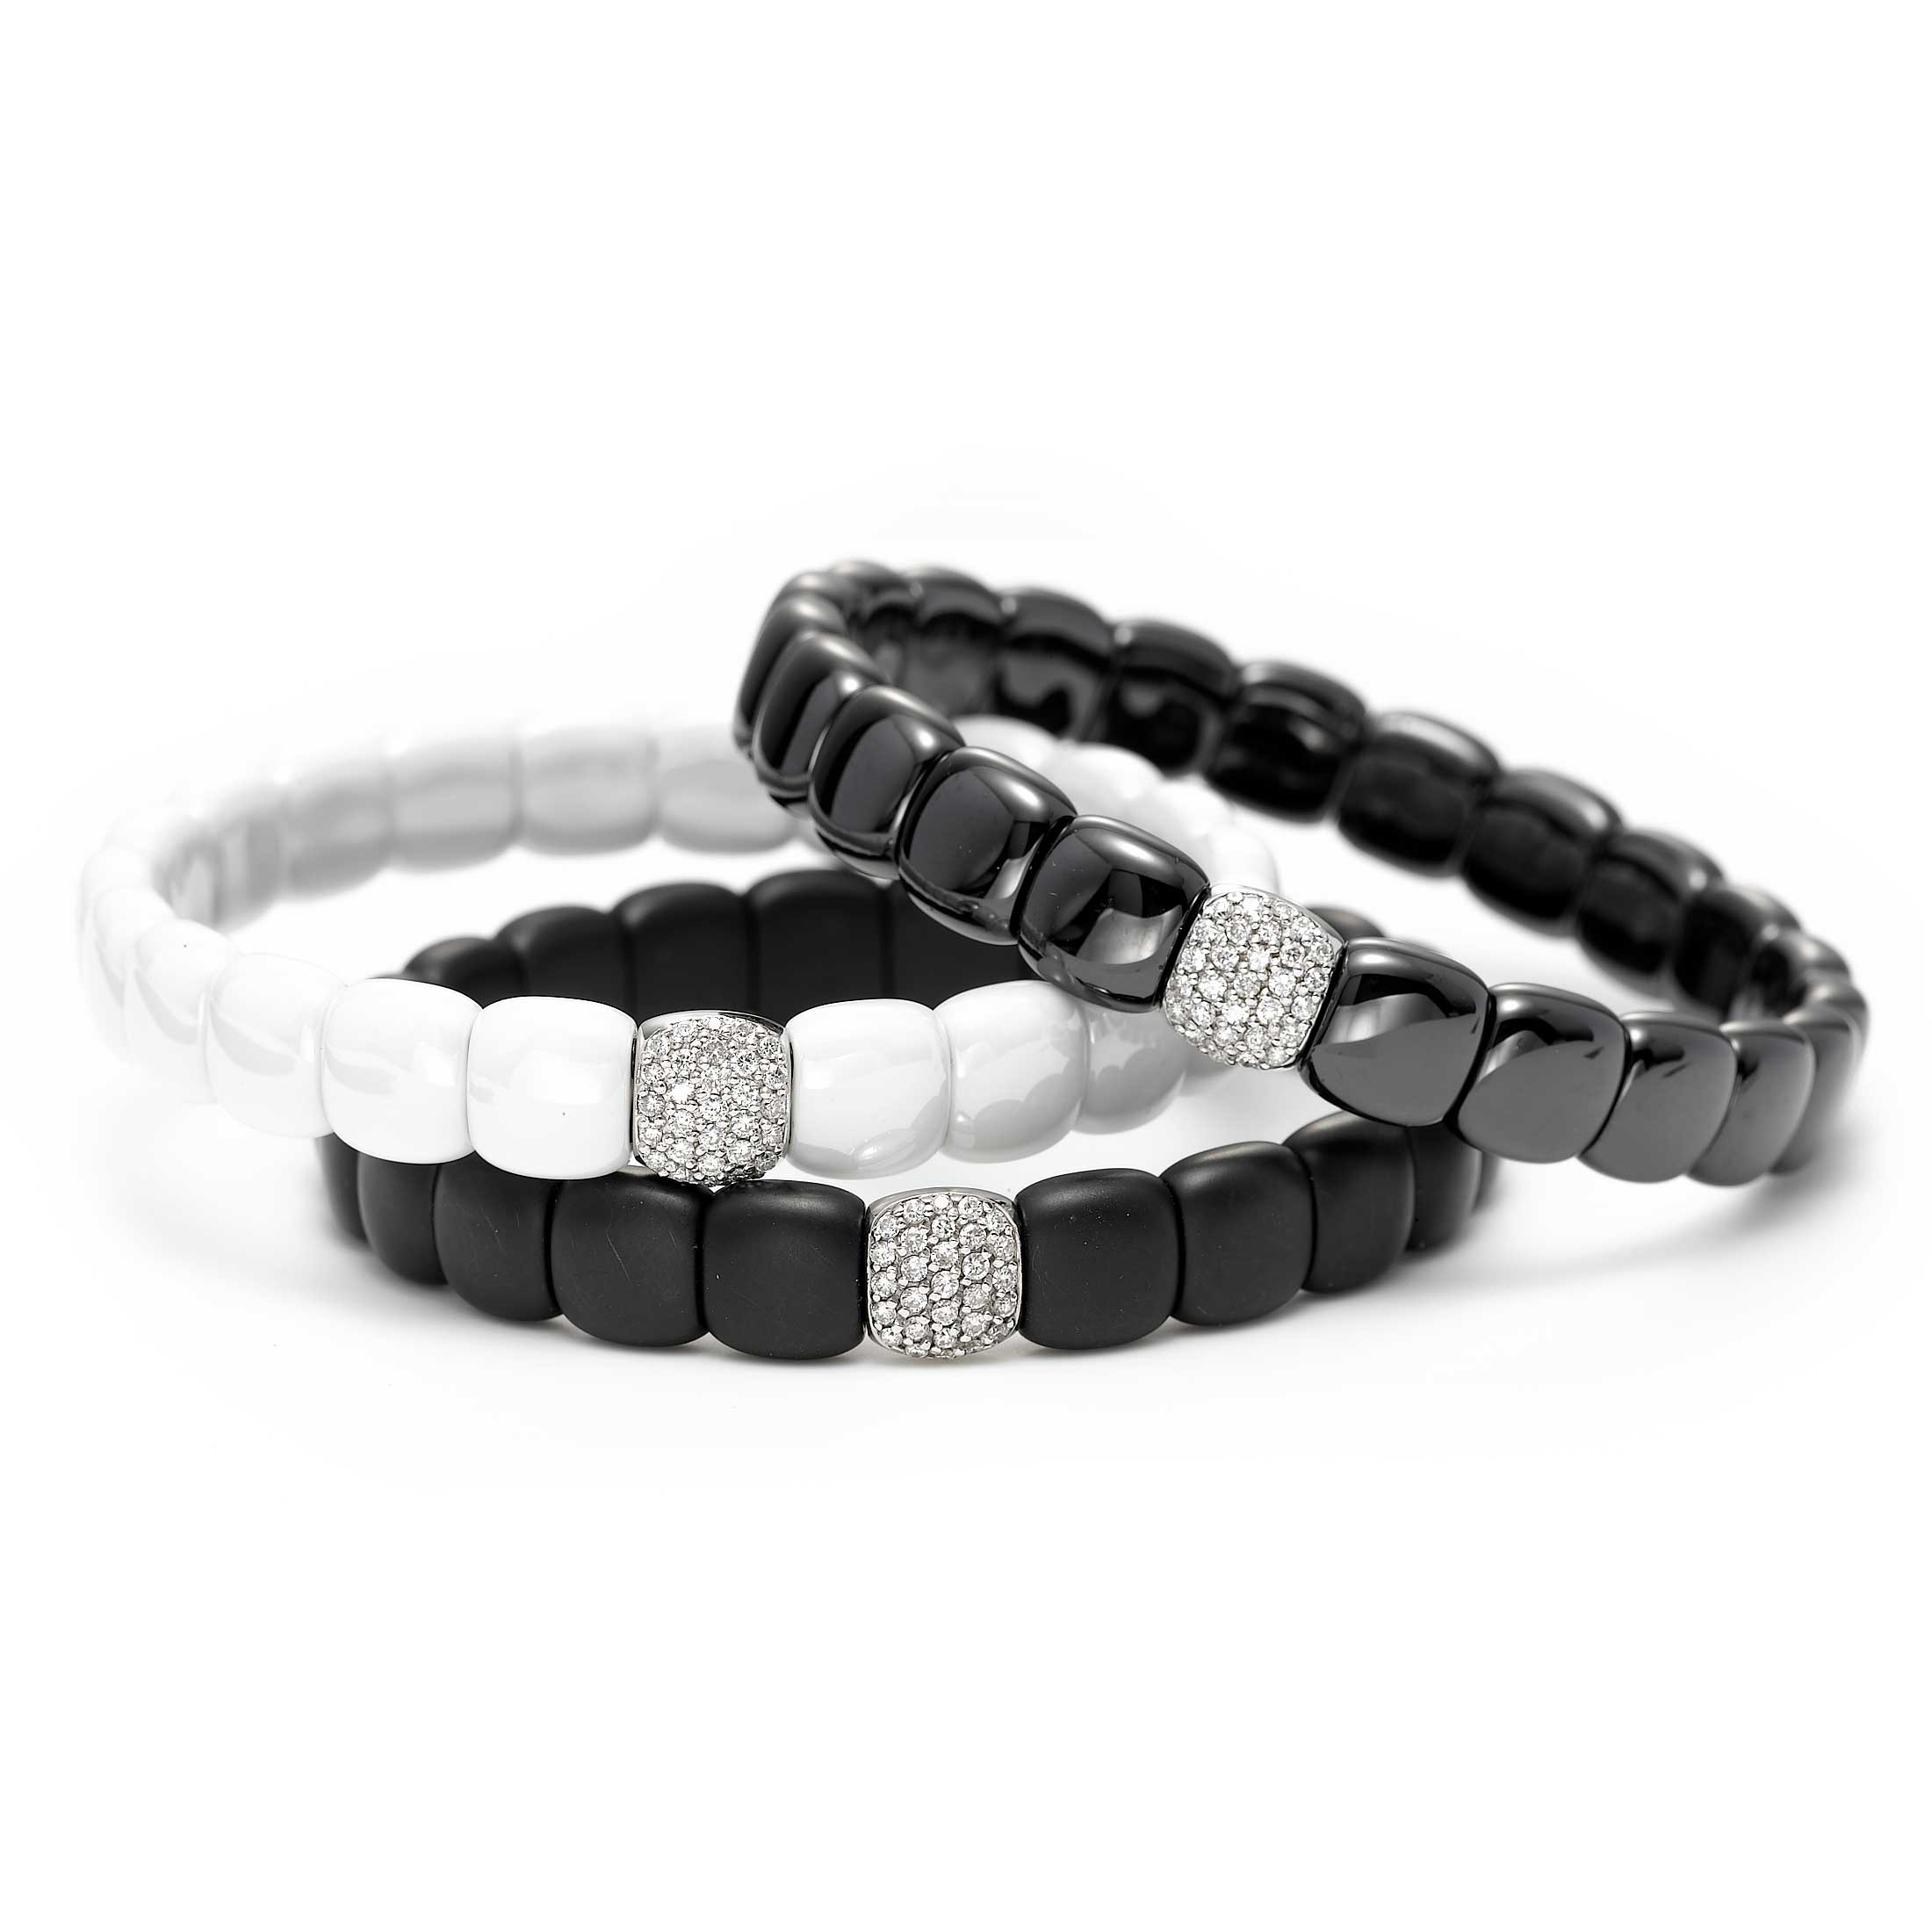 Matte Black Ceramic Bracelet with 18K White Gold Pavé Tile